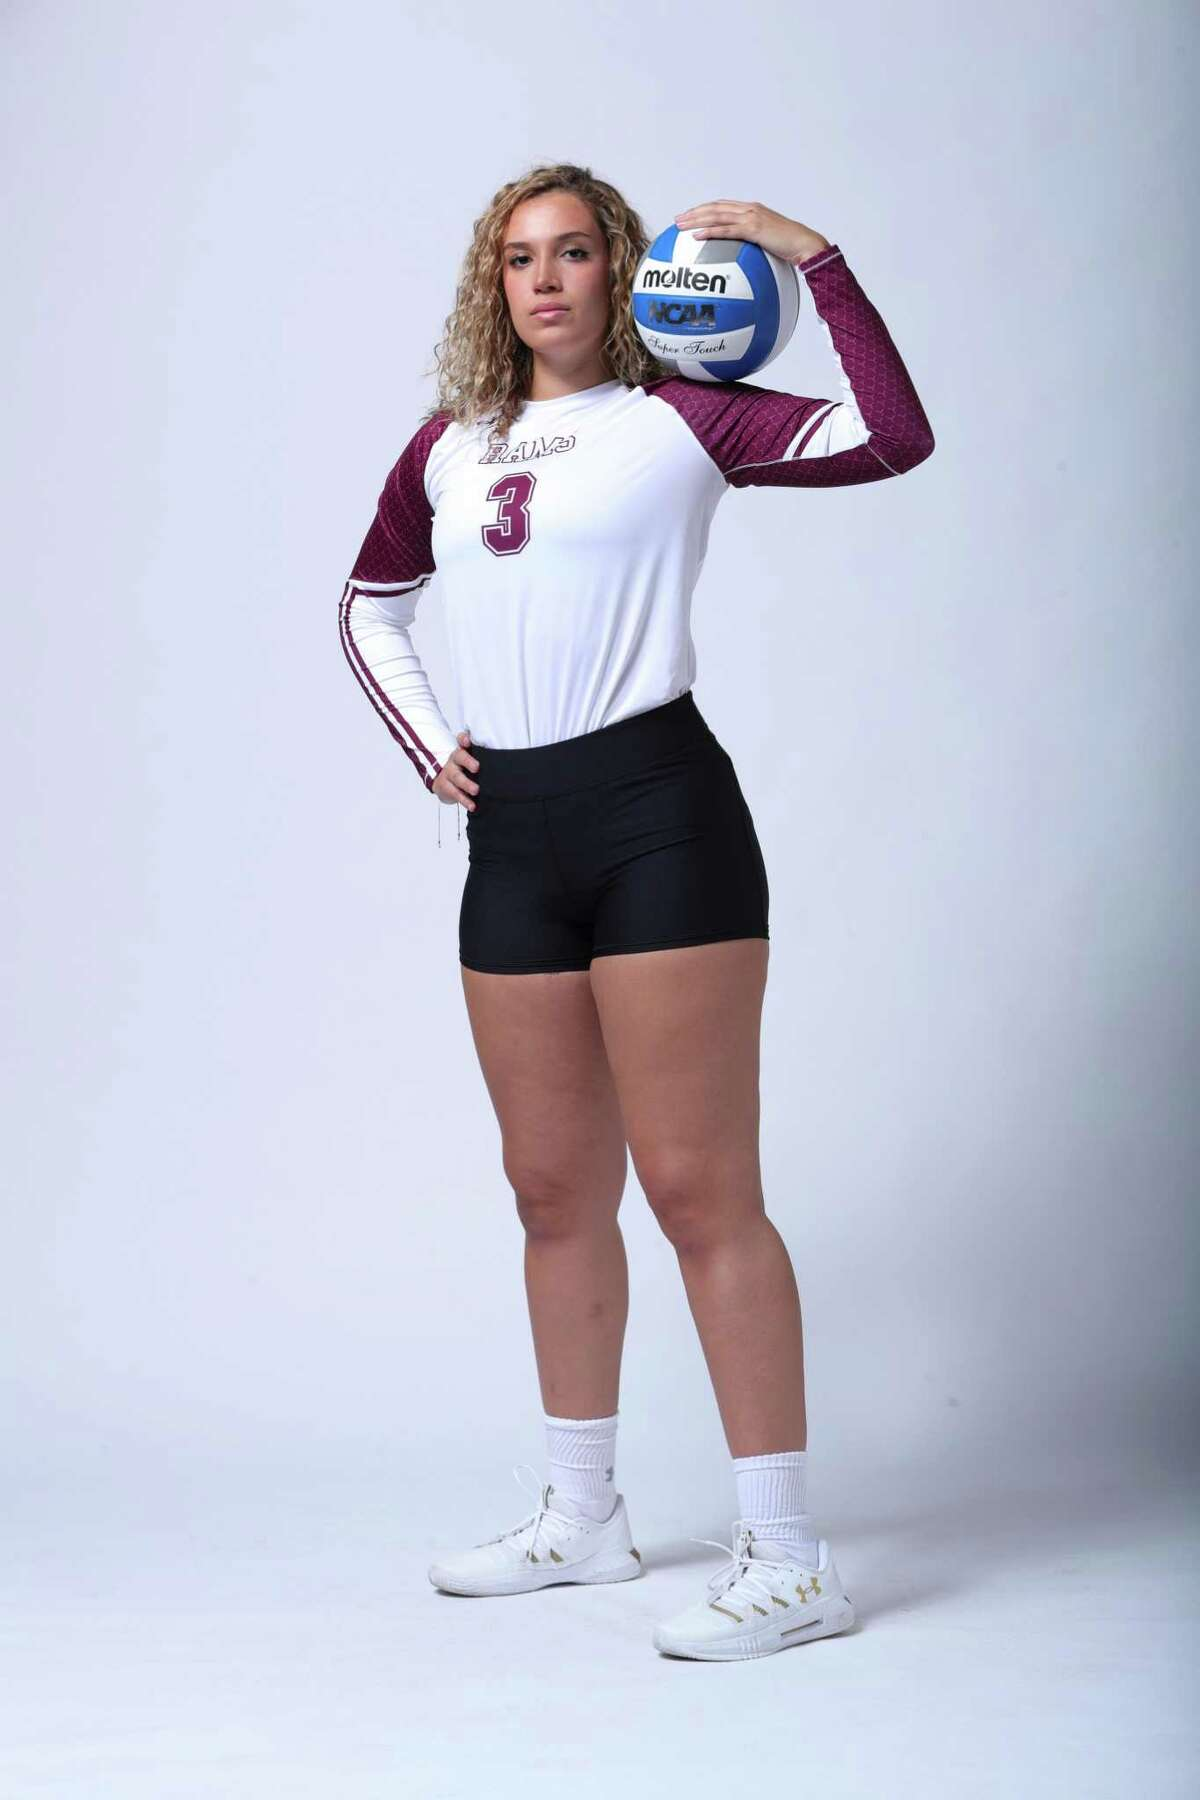 Former United volleyball player Lauren Arzuaga is preparing for her first collegiate games starting early in 2021.